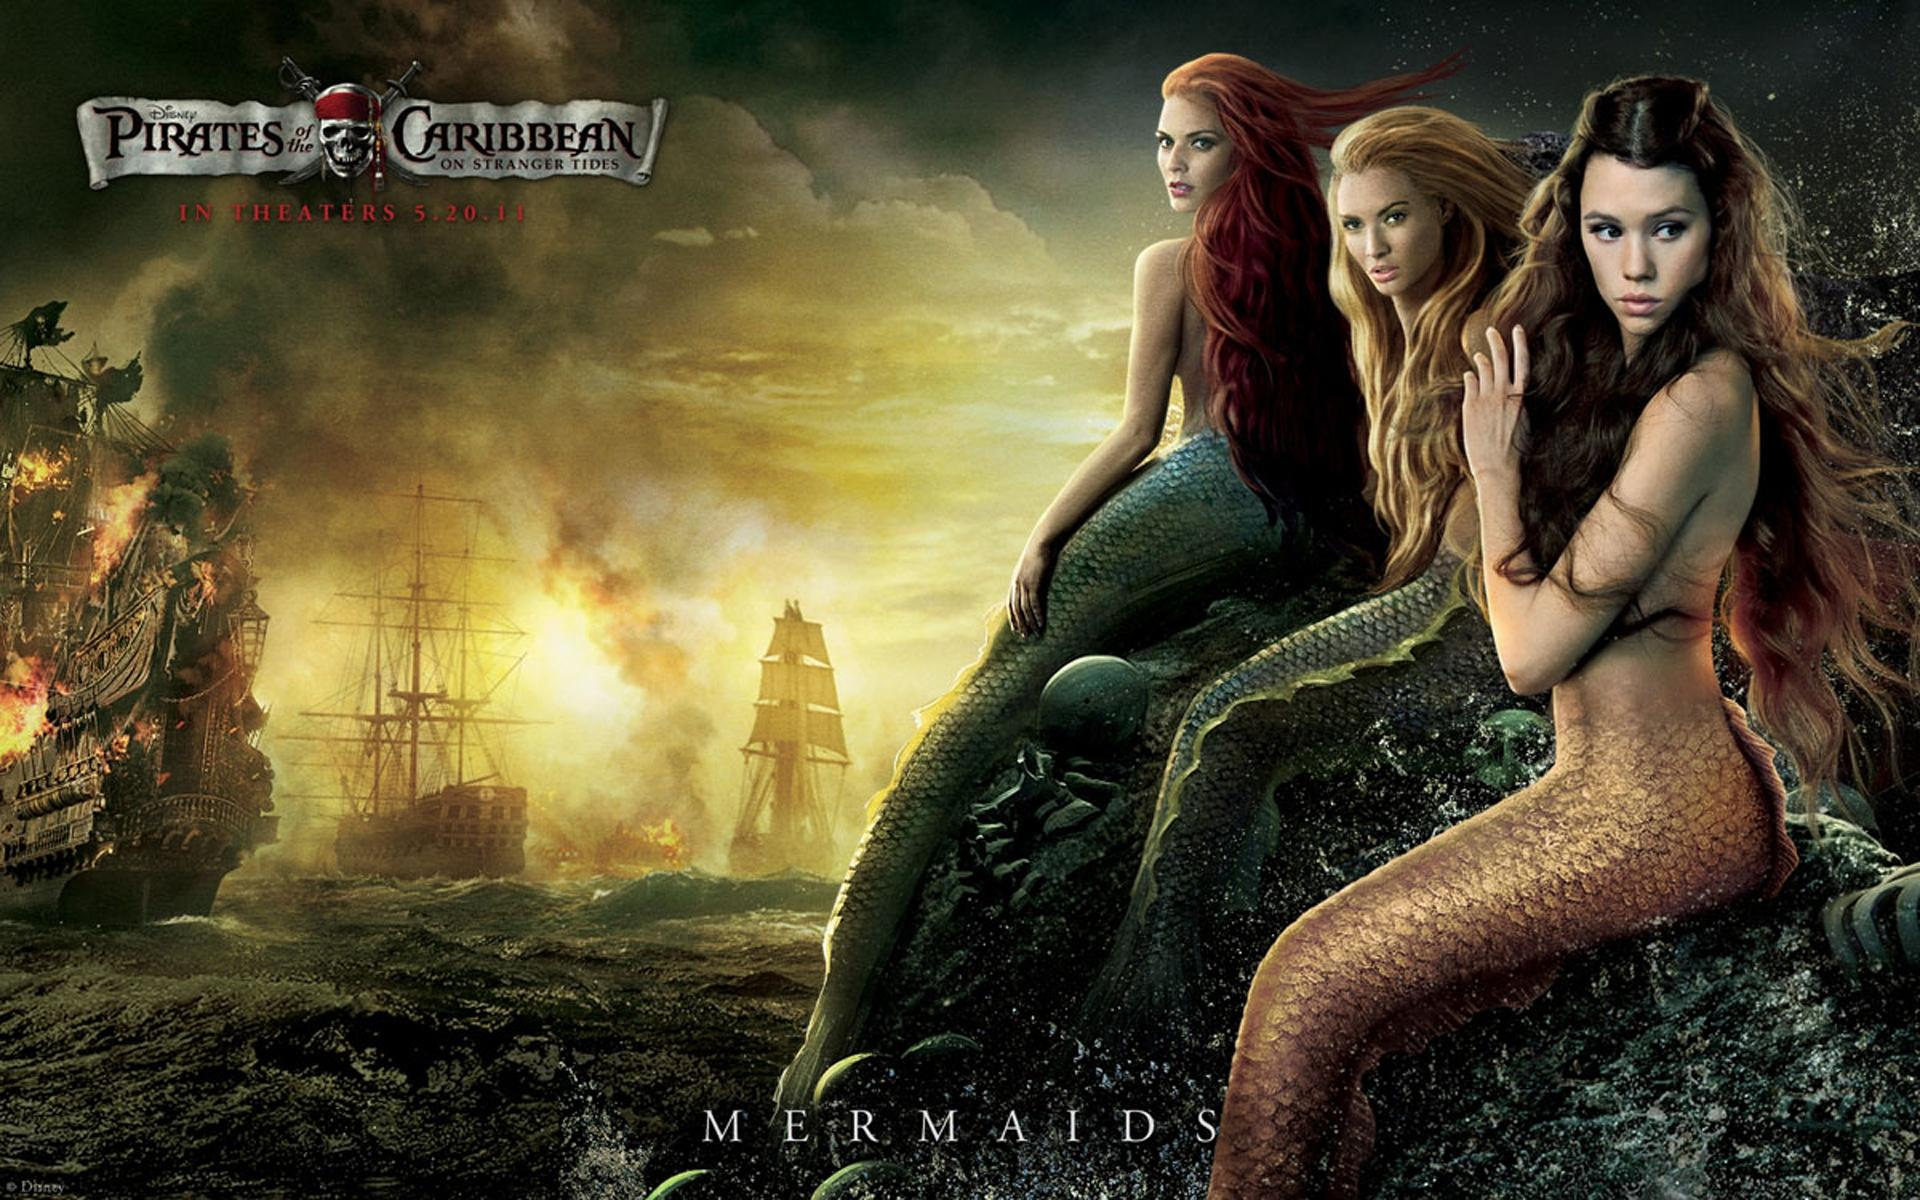 Pirates of the caribbean mermaid nude, wife sex interracial